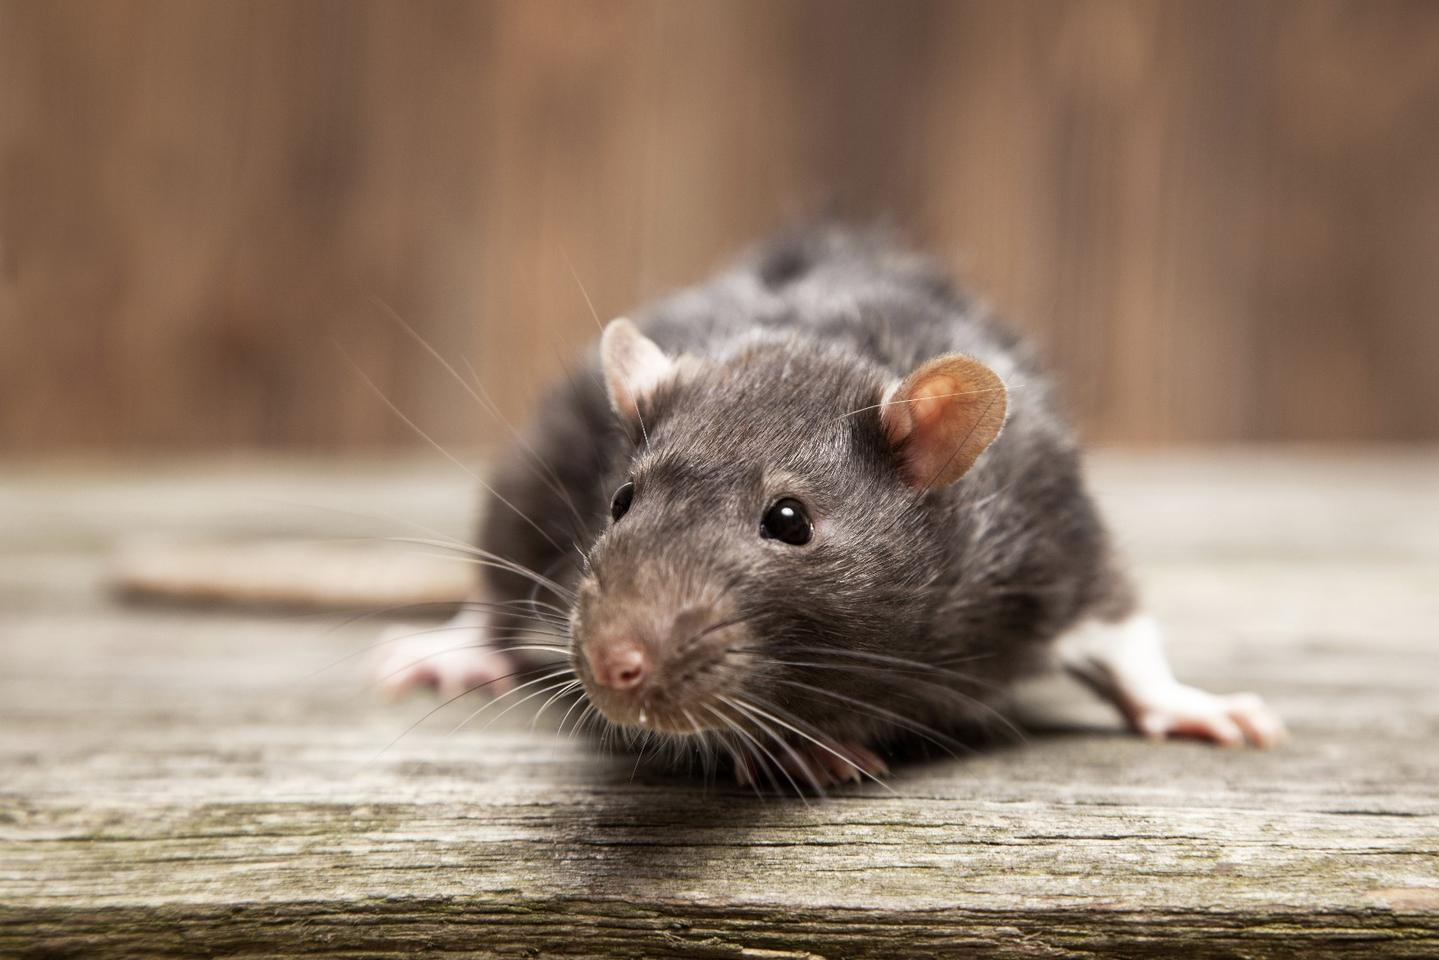 In an attempt to curb their exploding population, New York City is testing a new liquid bait, called ContraPest, which renders rats infertile